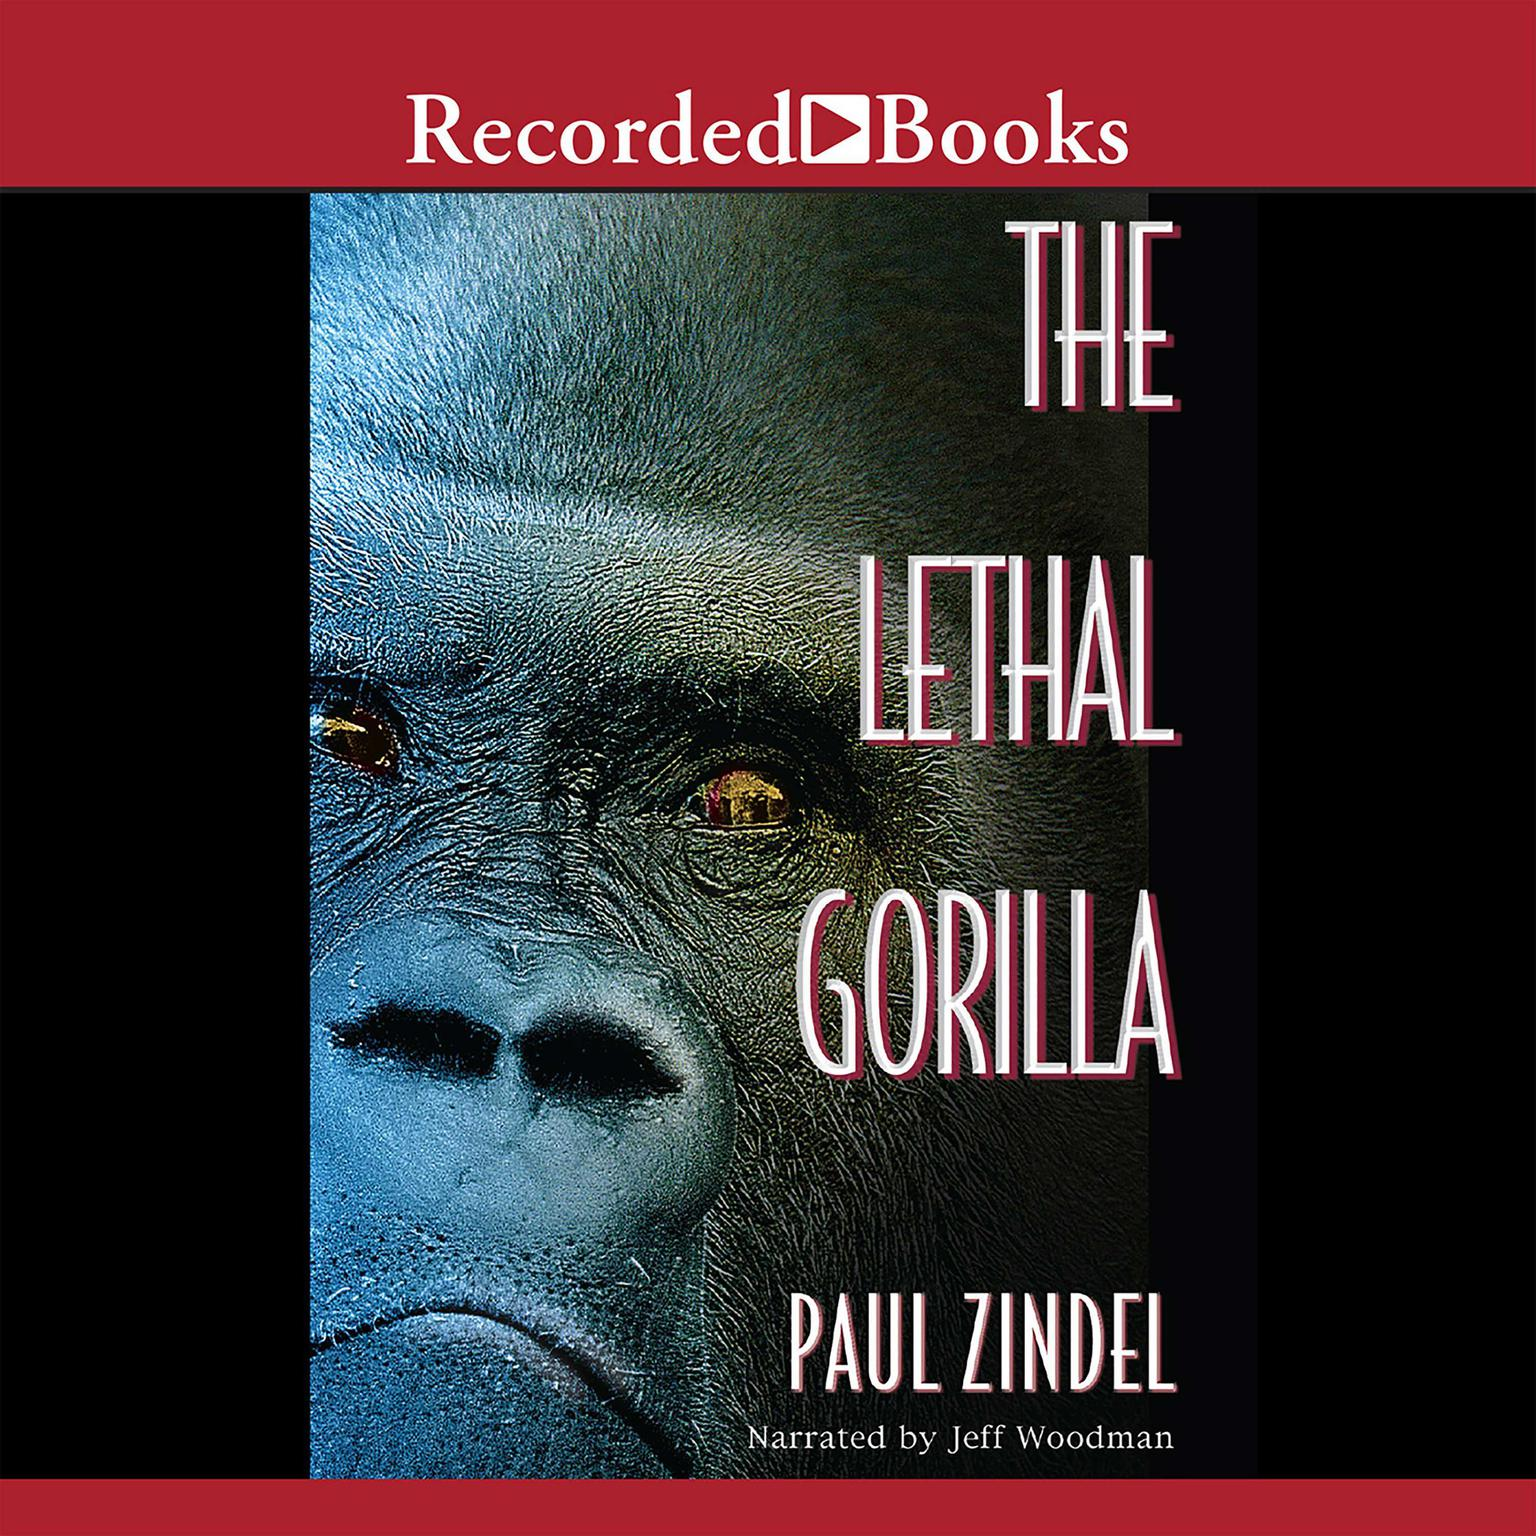 Printable The Lethal Gorilla Audiobook Cover Art